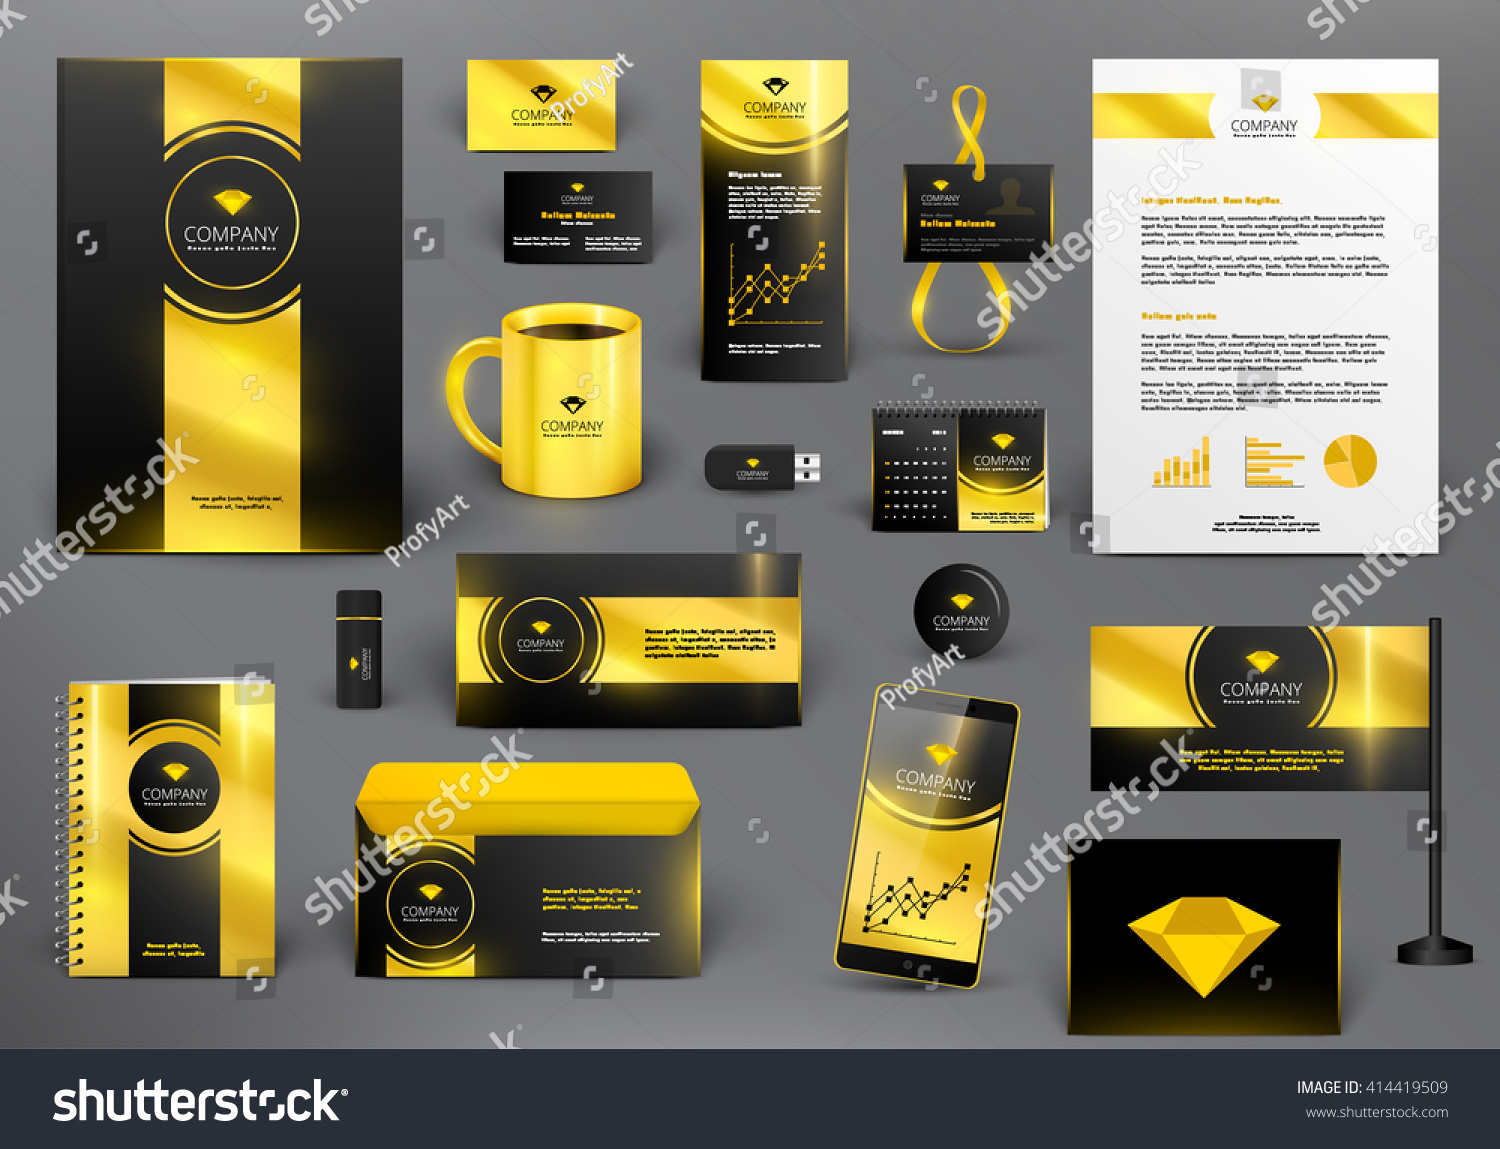 Professional Luxury Branding Design Kit For Jewelry Shop Golden Style Premium Corporate